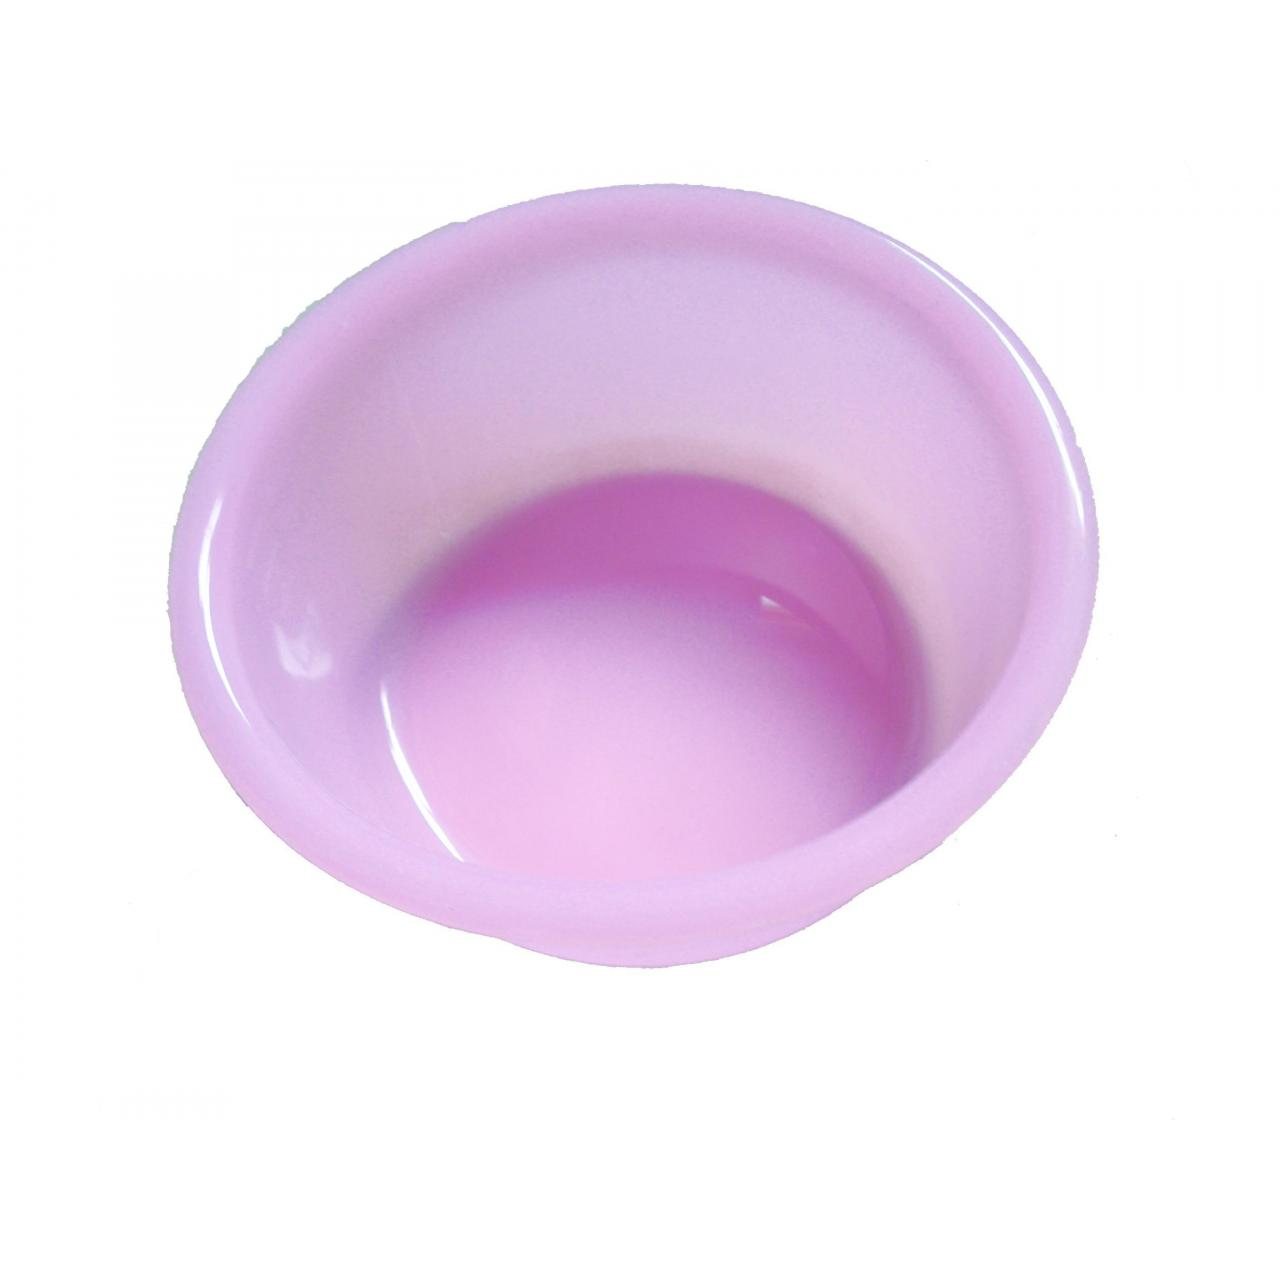 【Recommended products】 FDA Baby Bowl